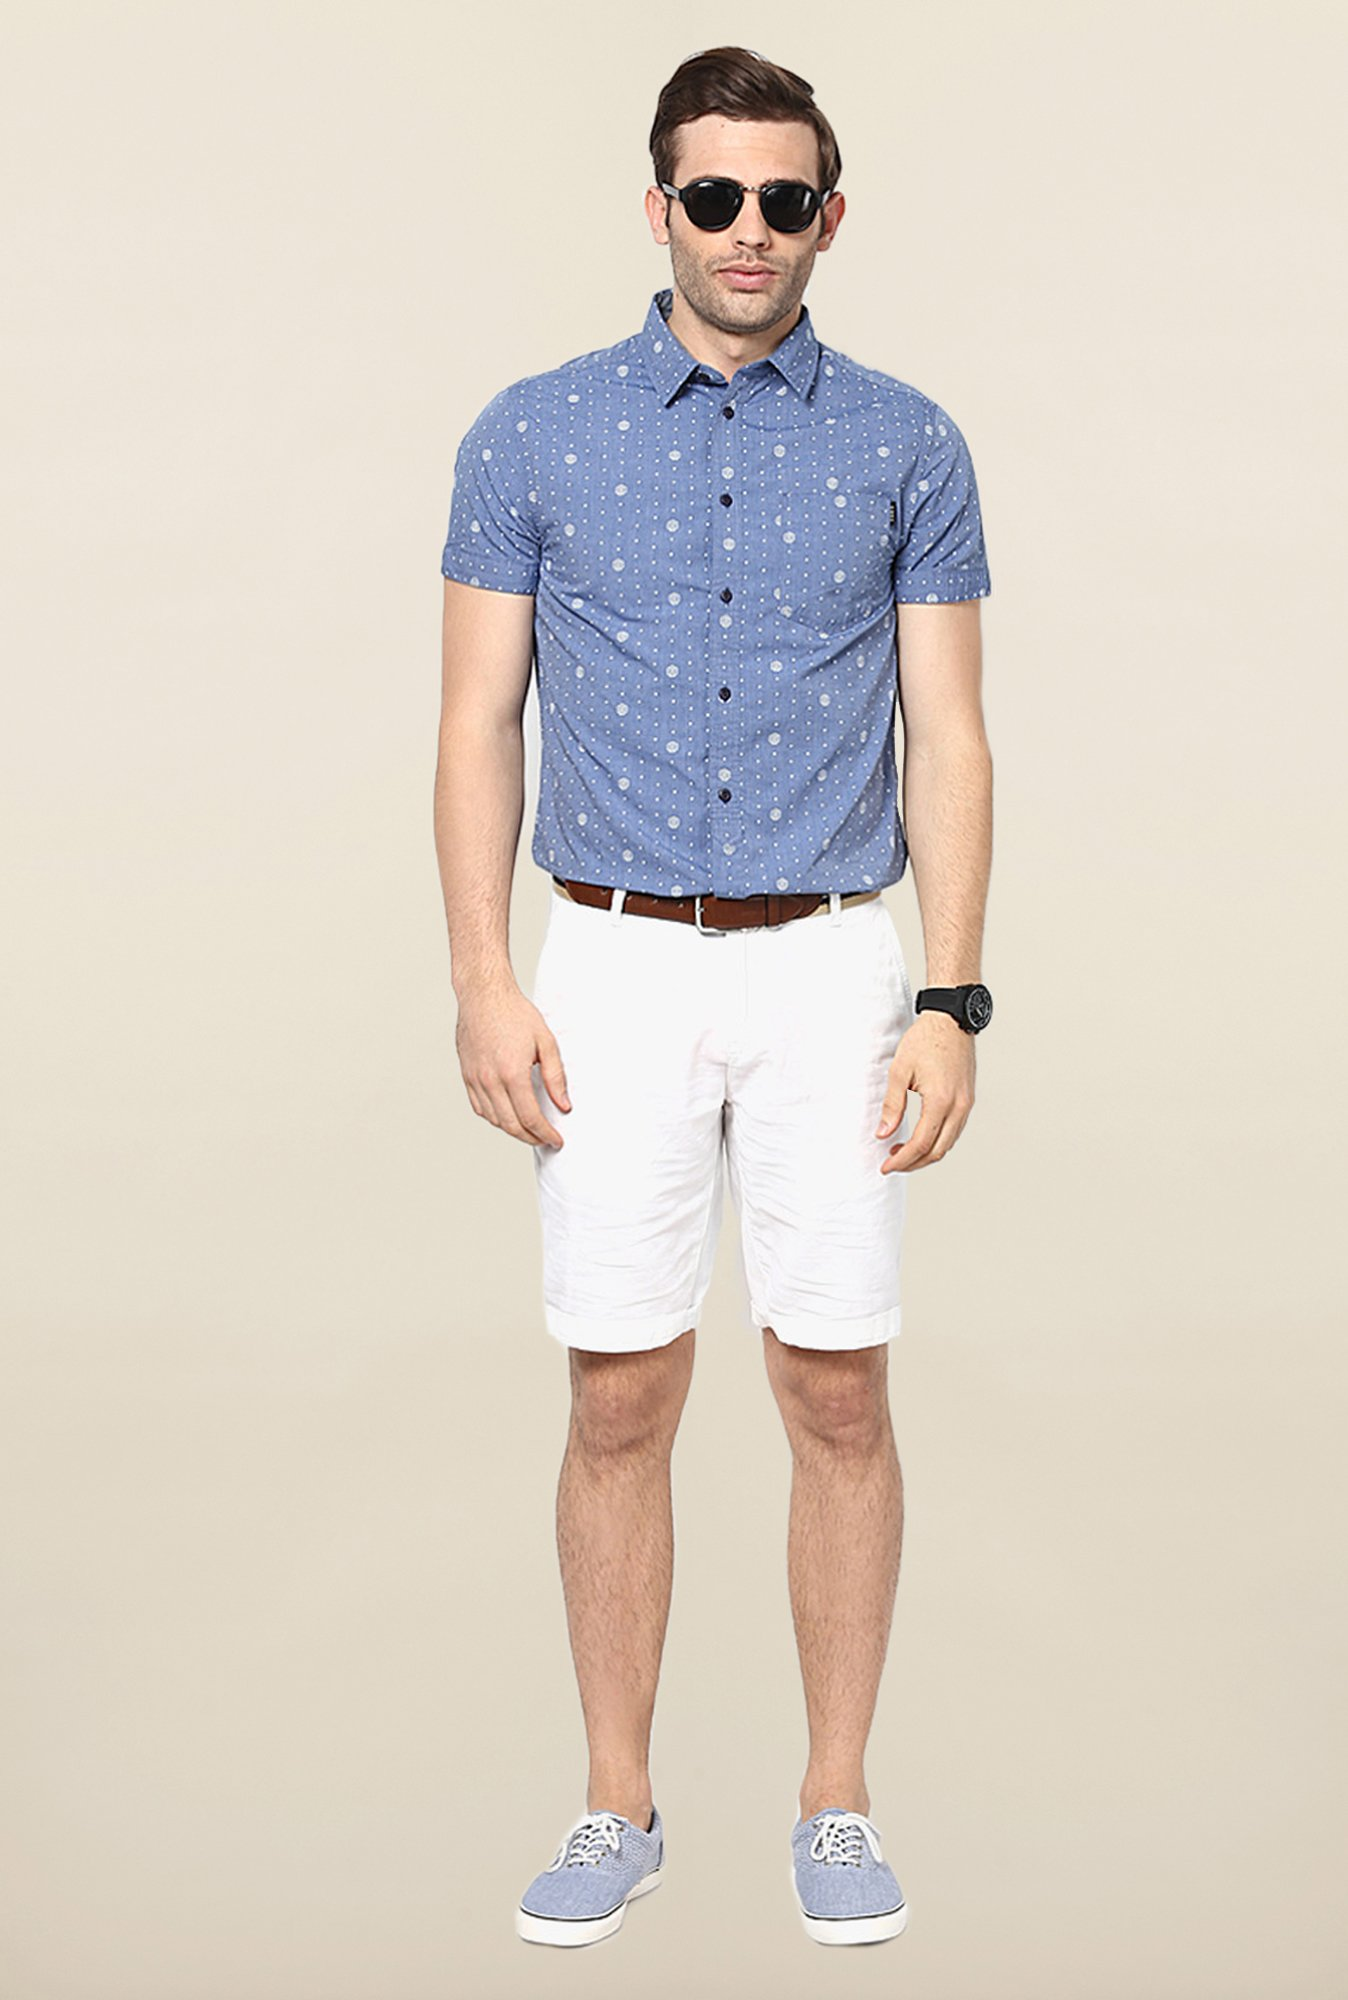 Jack & Jones Blue Printed Short Sleeves Shirt